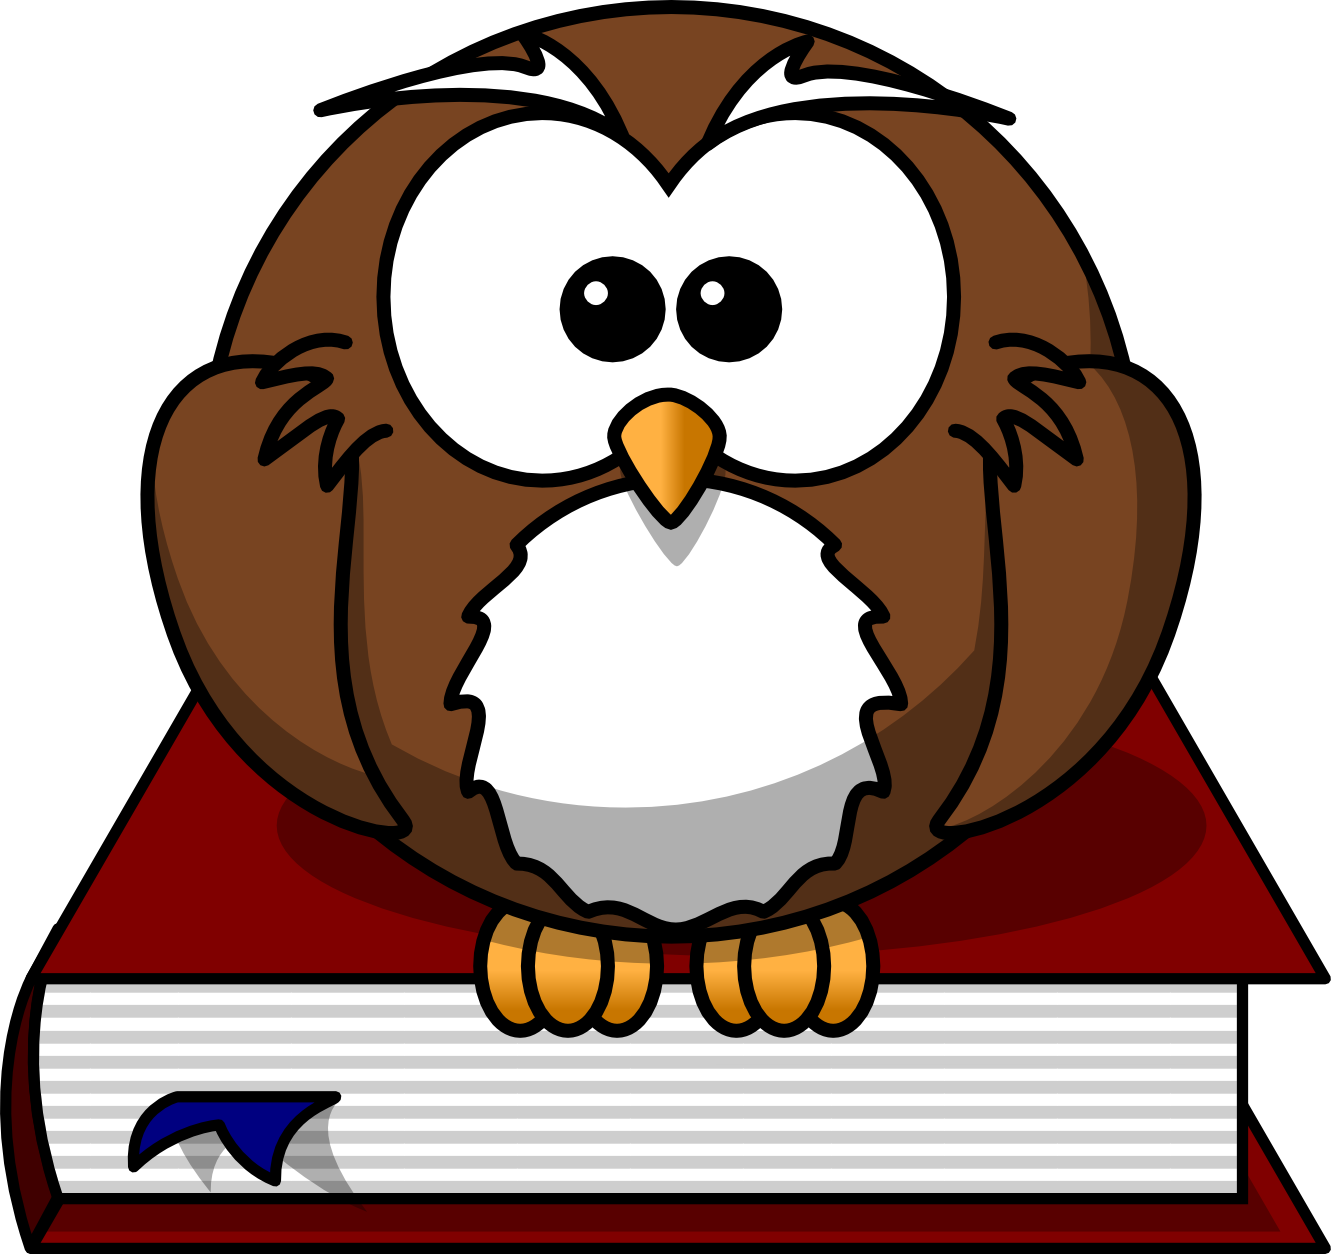 Clipart library owl. Free cartoon png download